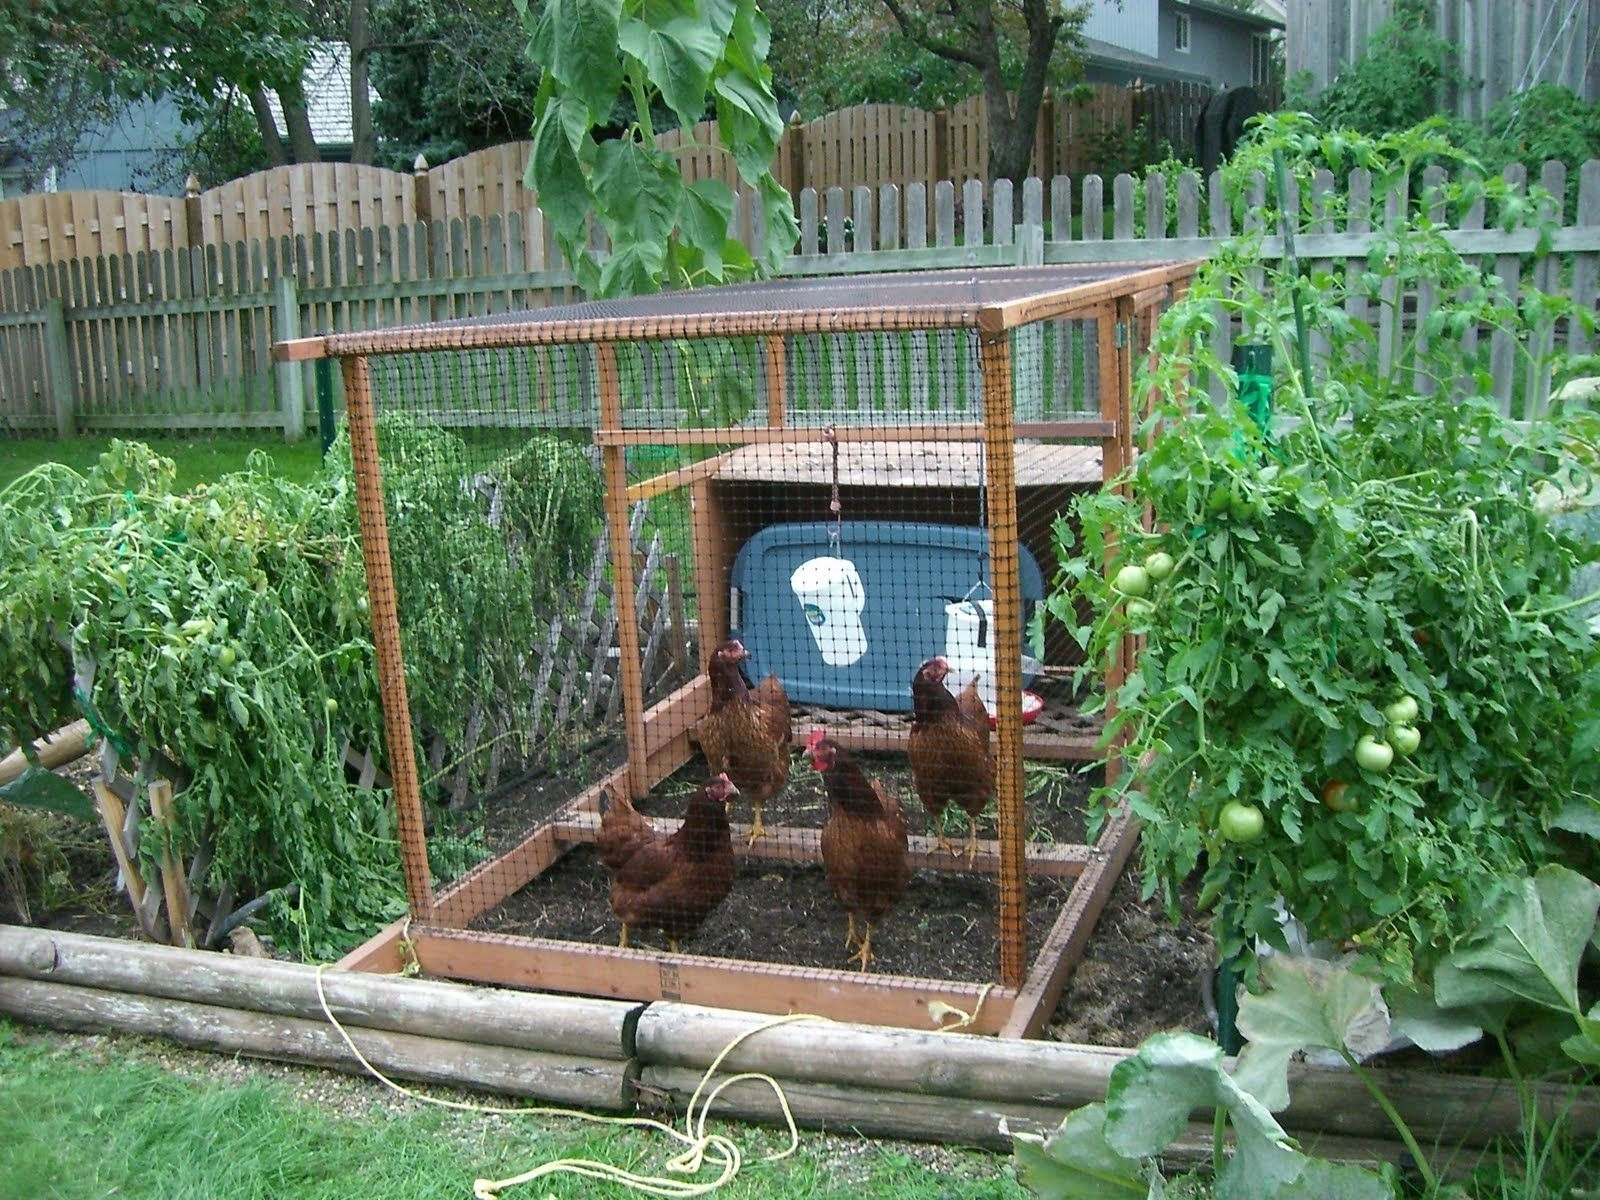 Spectacular-Simple-Backyard-Vegetable-Garden-Ideas -Intended-For-Home-Decoration-For-Interior-Design-Styles with Simple Backyard Vegetable Garden Ideas